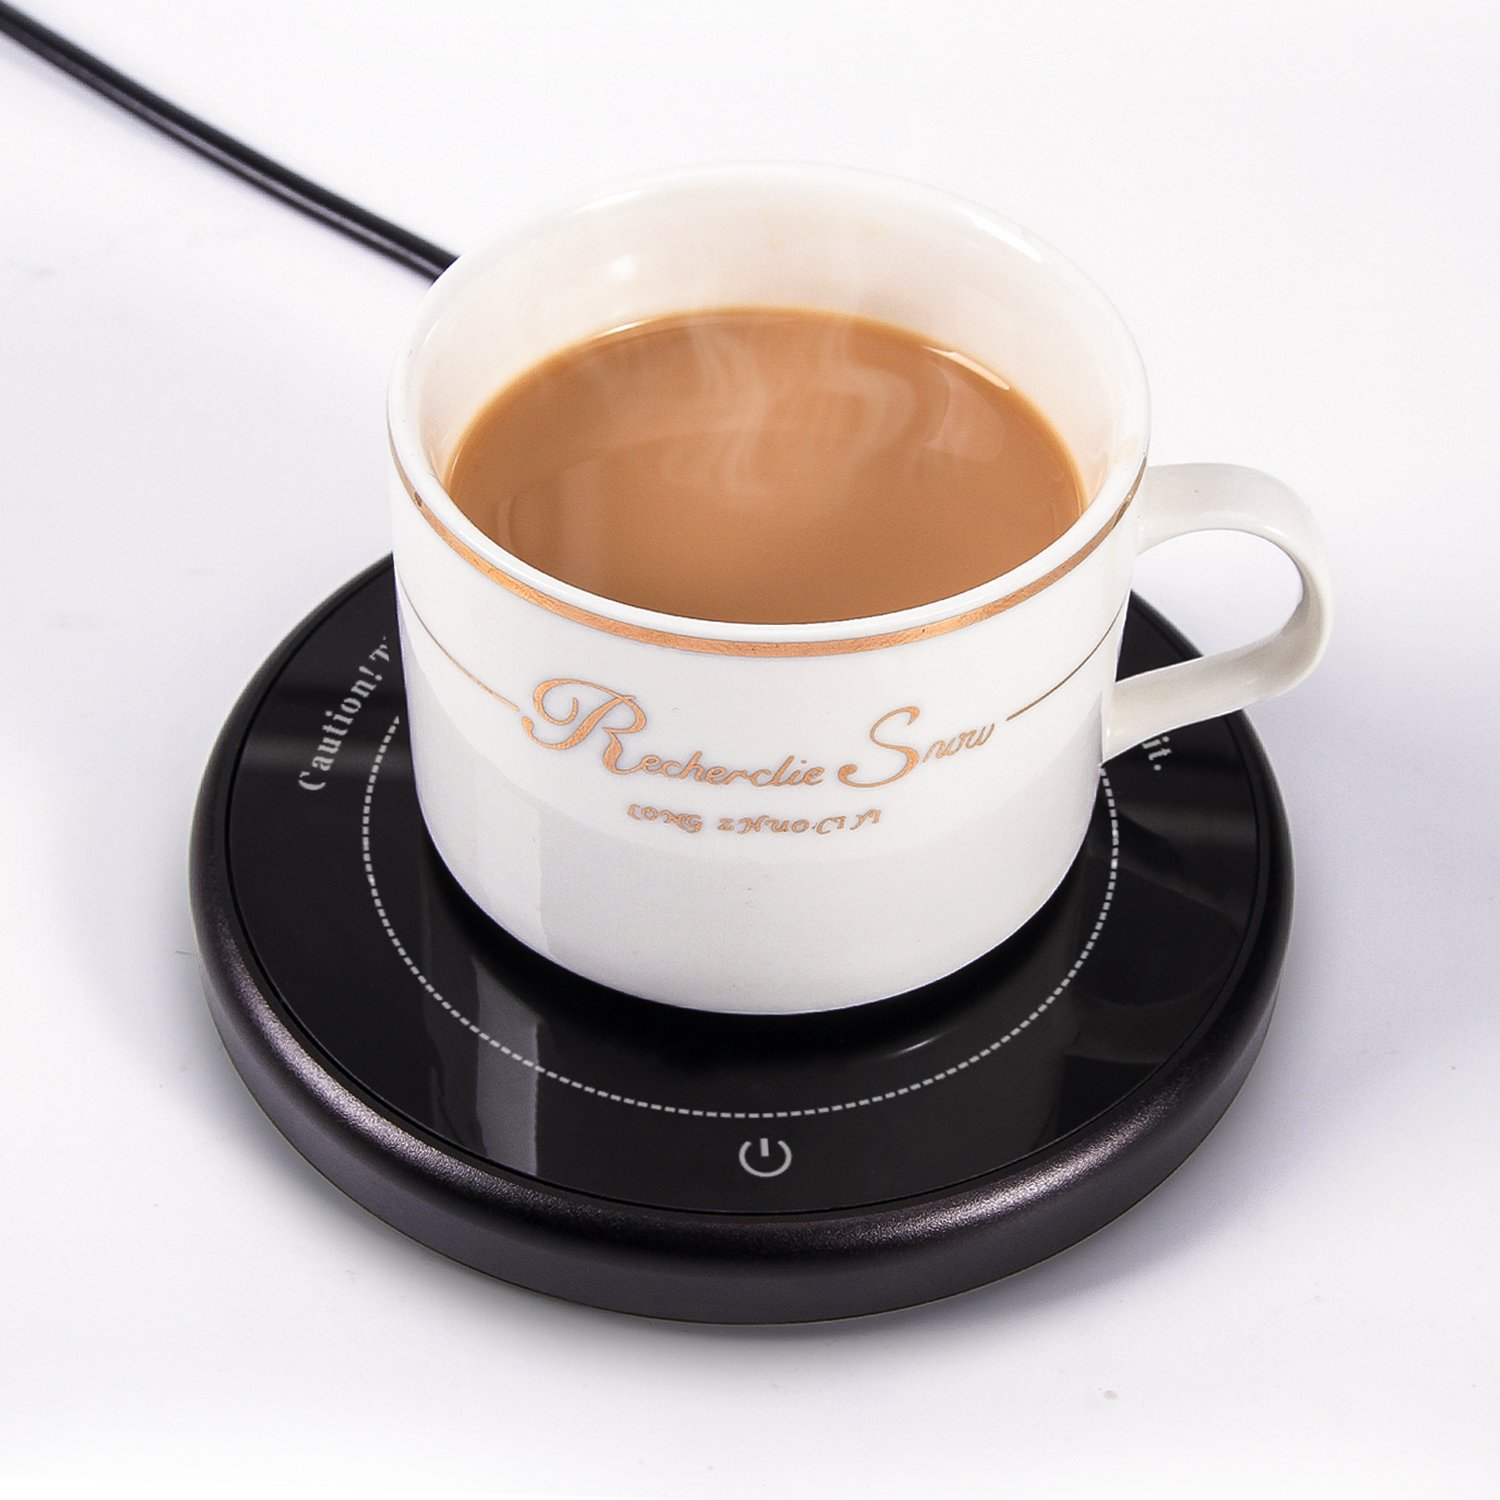 Coffee Mug Warmer Tea Milk Cocoa Electric Cup Beverage Plate Thermostatic Smart Cup Heater for Home Office Use 8h Auto Shut Off Coffee Beverage Warmer as Gift (Up to 131℉/55℃) Zoiibuy A203